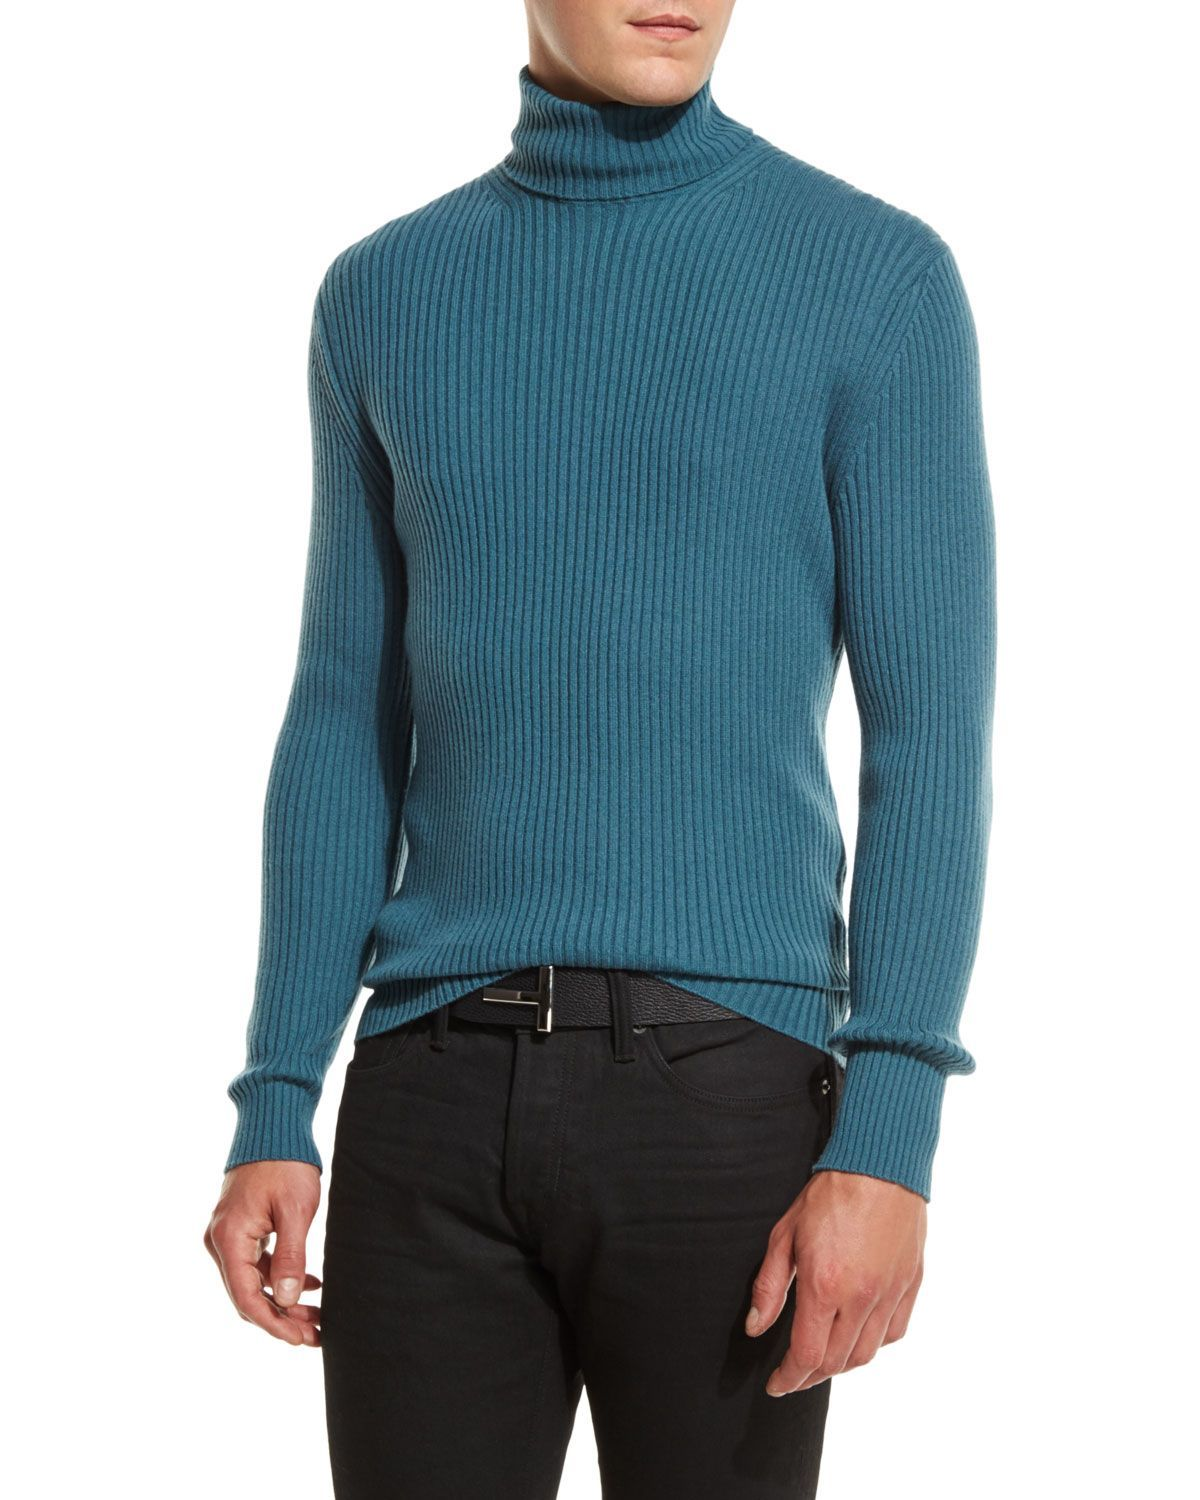 Tom Ford sweater in 12 gauge ribbed knit. Turtle neckline